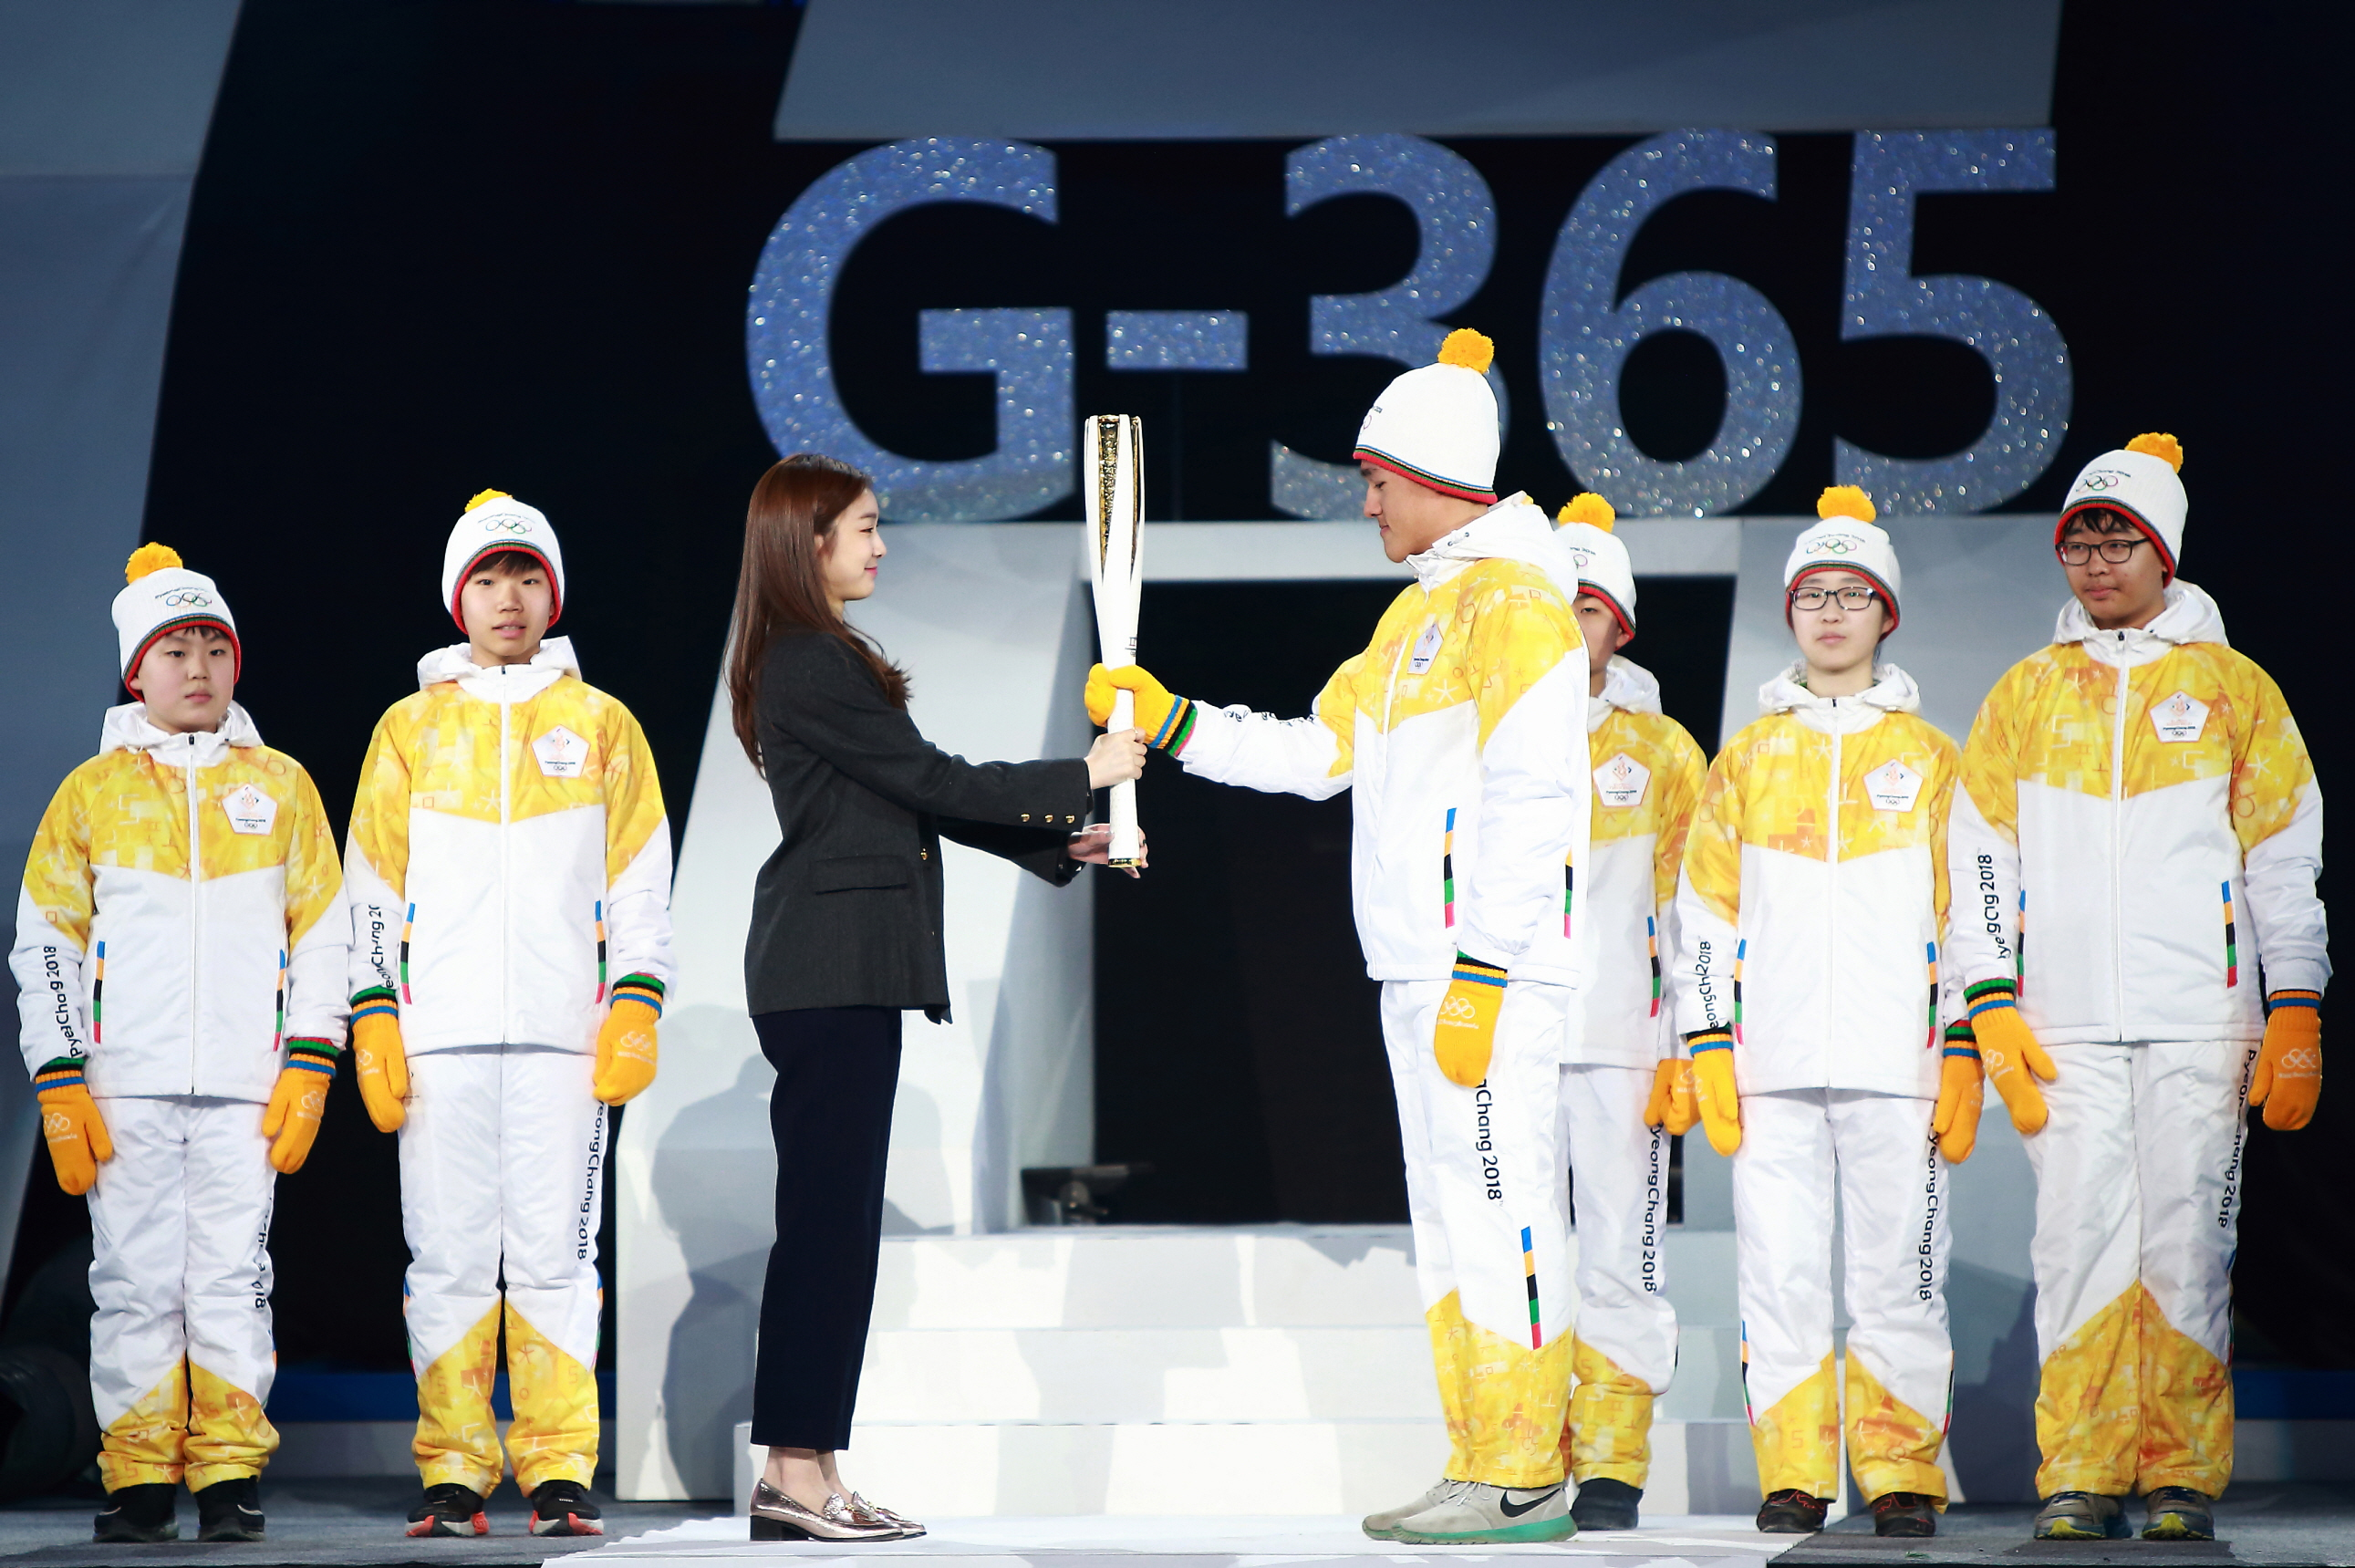 170209_PyeongChang 2018 Press Release_The Countdown has begun!_Photo 6